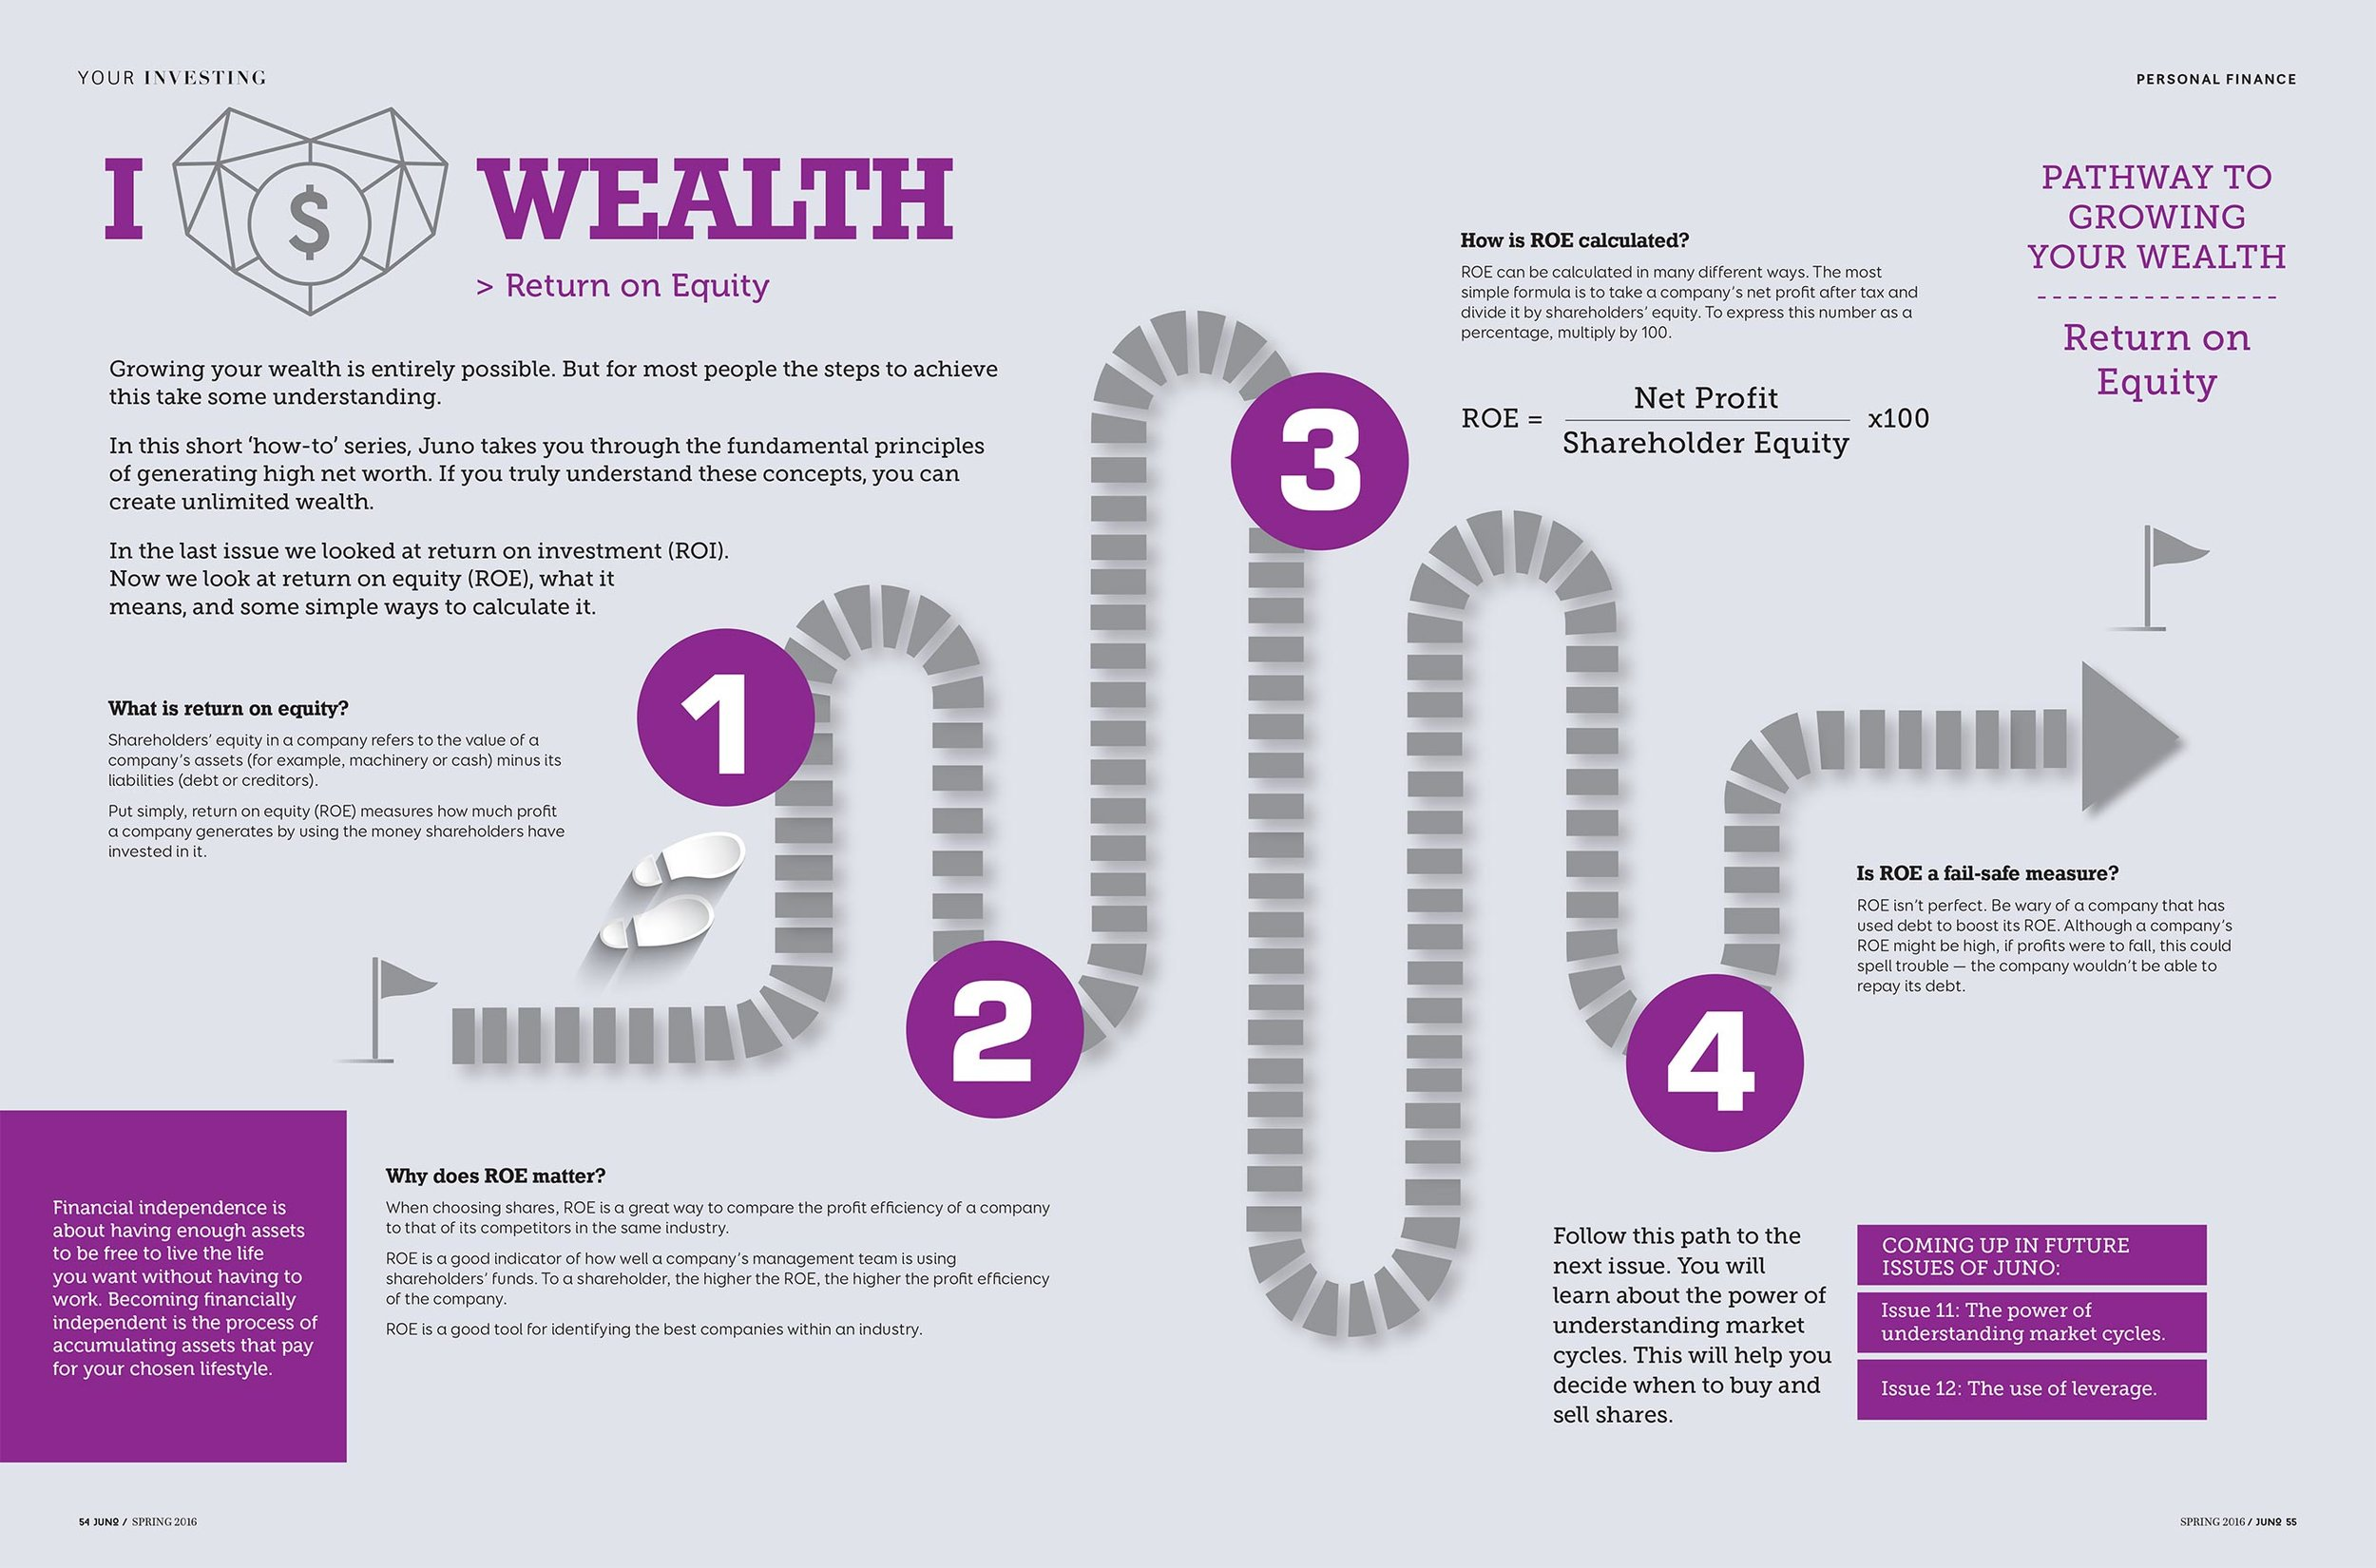 3. Spring 2016 - Choices - Personal Finance_DPS 29.jpg